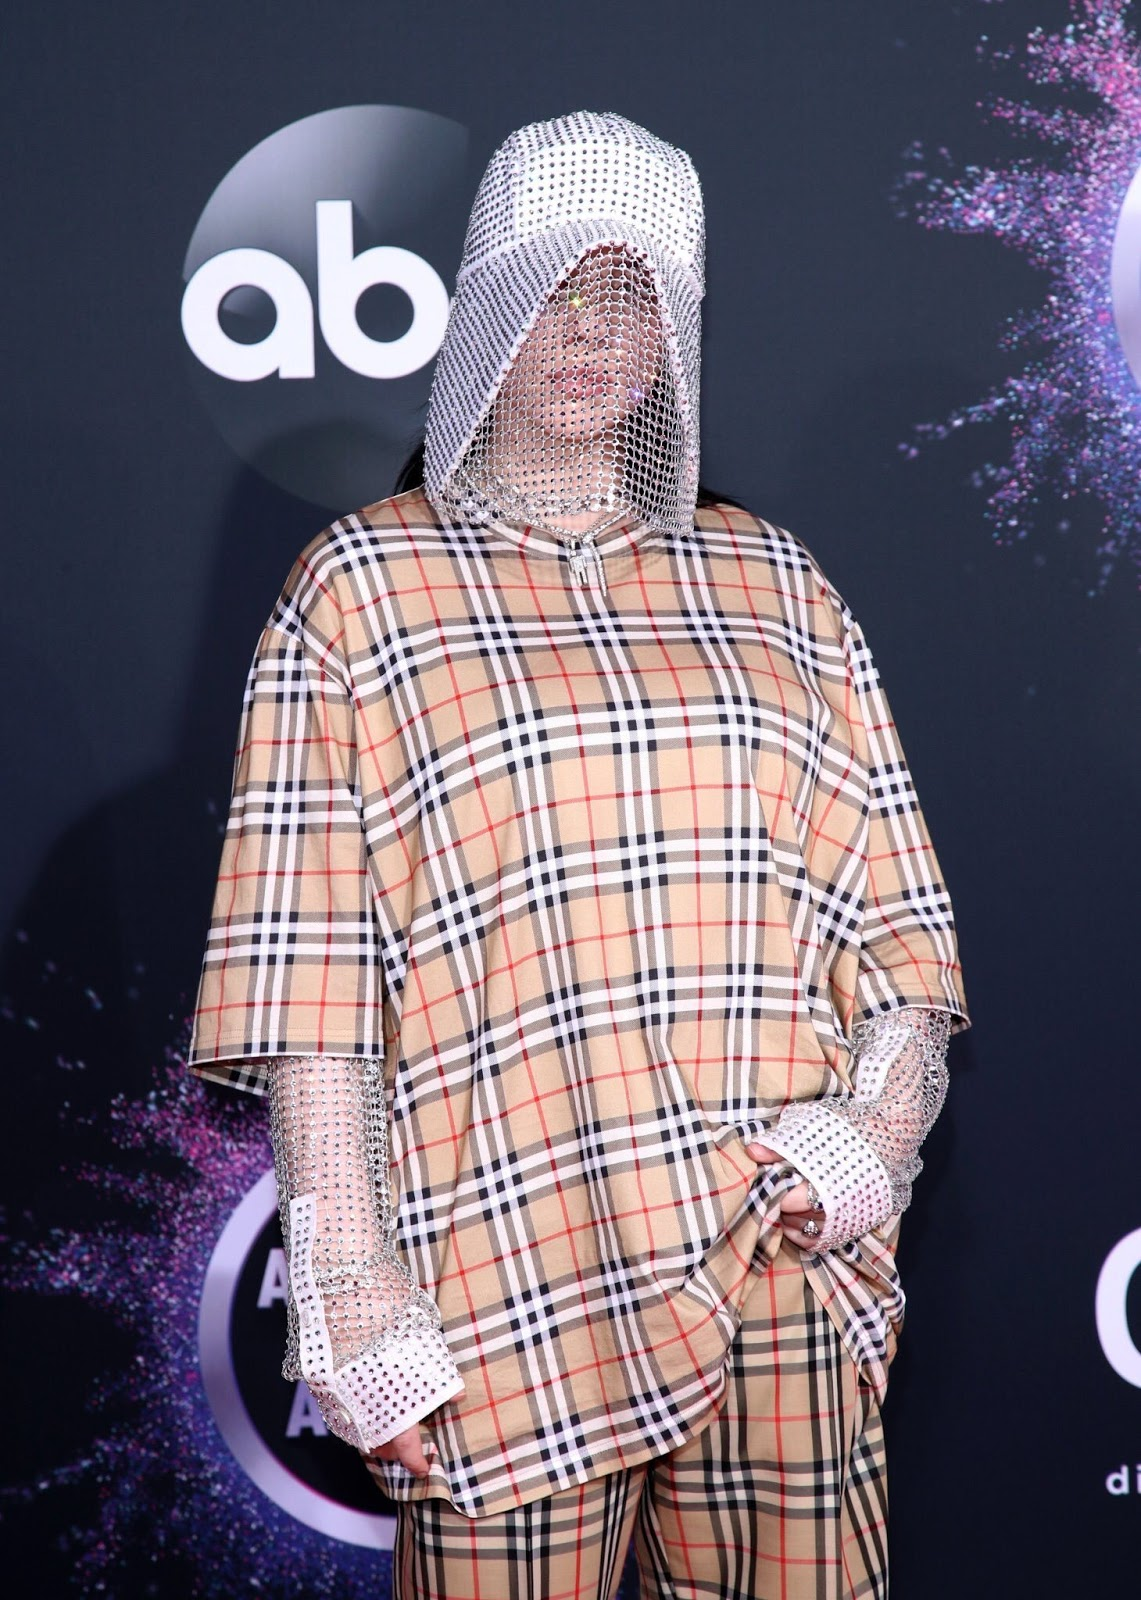 Billie Eilish Rocks 2019 AMAs Red Carpet in Quirky Plaid Look Ahead of First-Ever Awards Show Performance